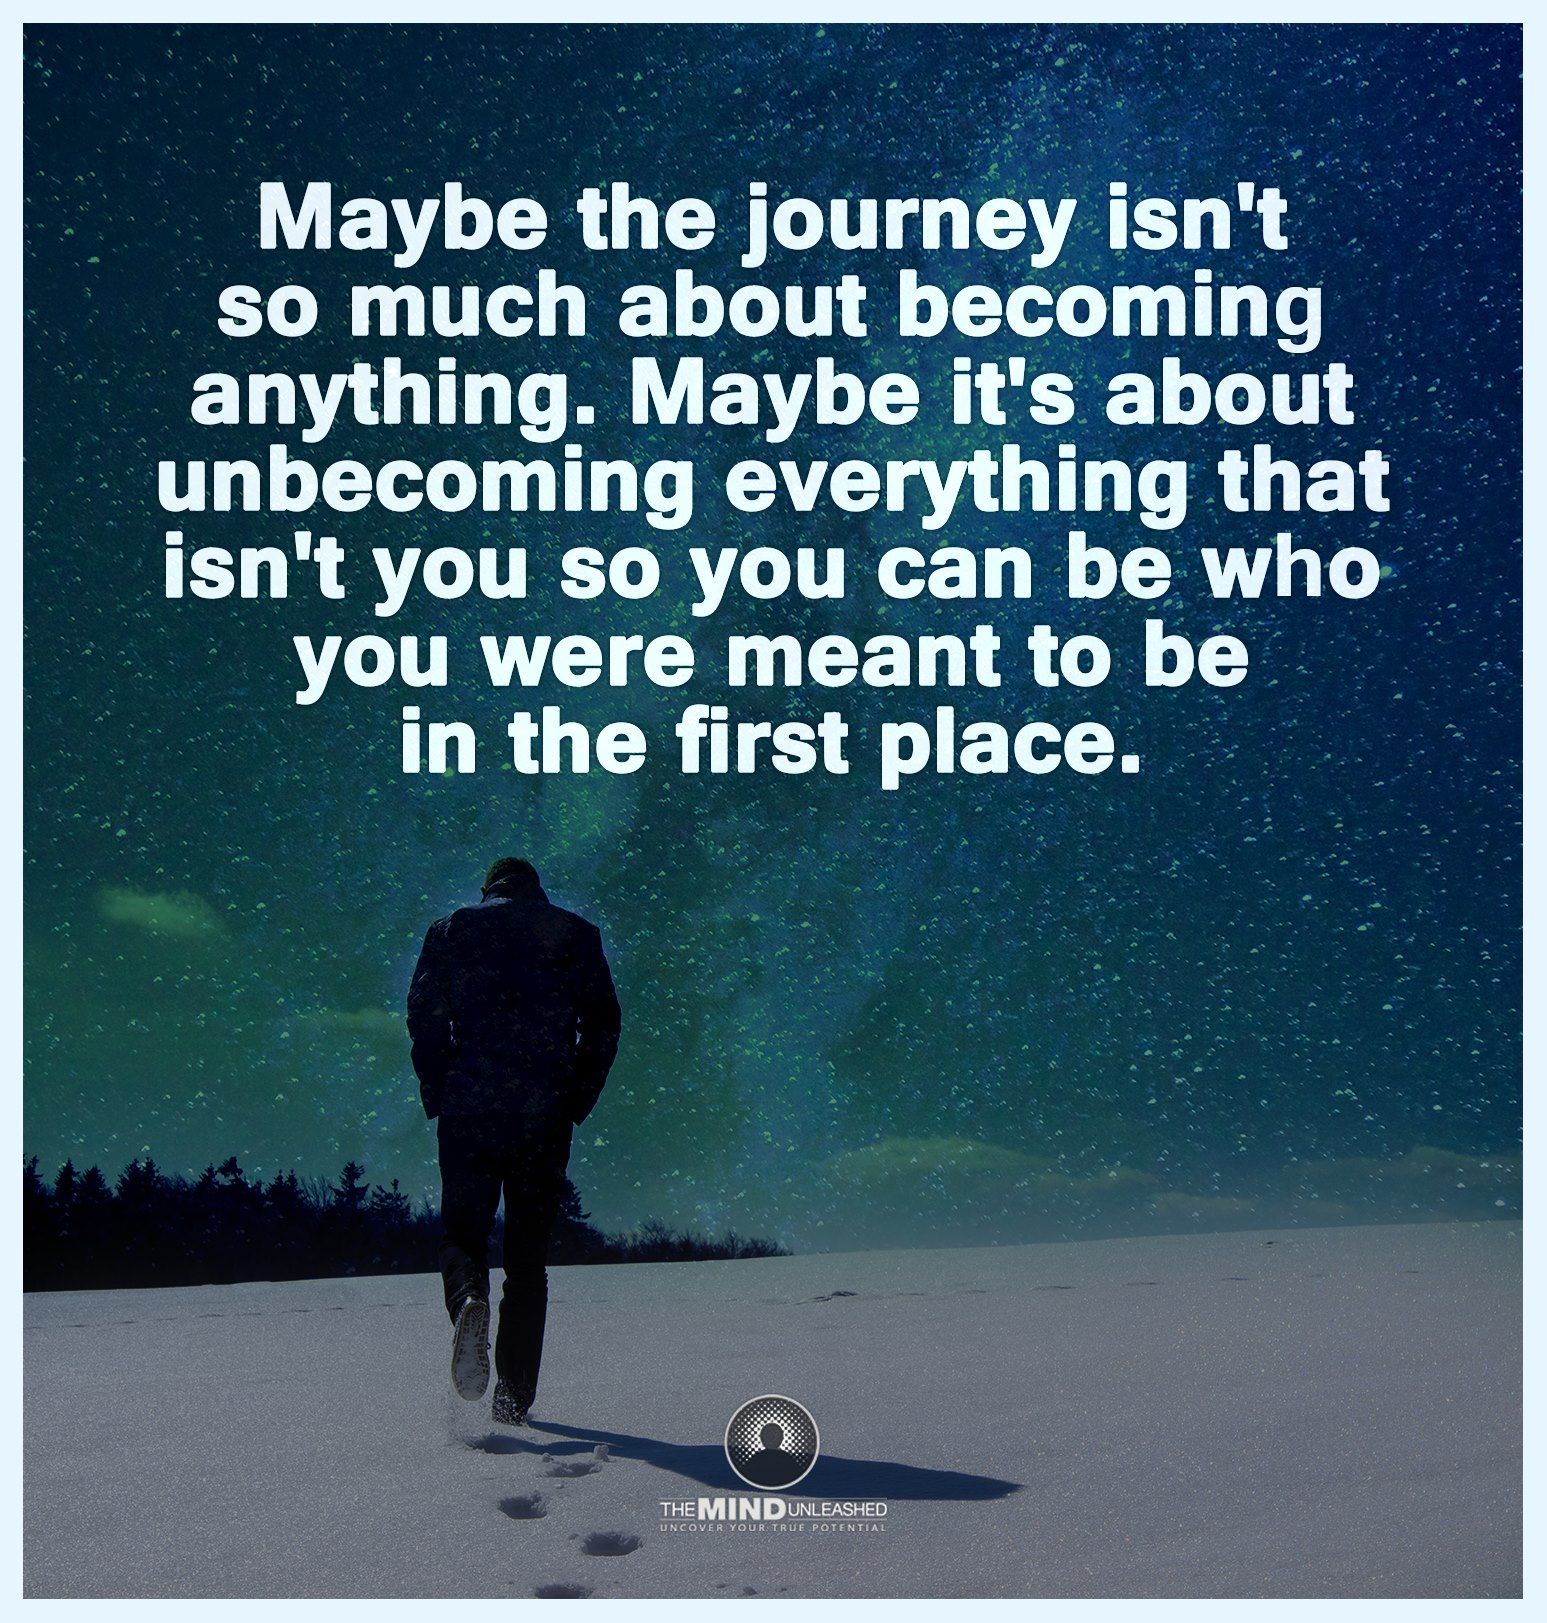 Maybe the journey isn't so much about becoming anything. Maybe it's about unbecoming everything that isn't you so you can be who you were meant to be in the first place.